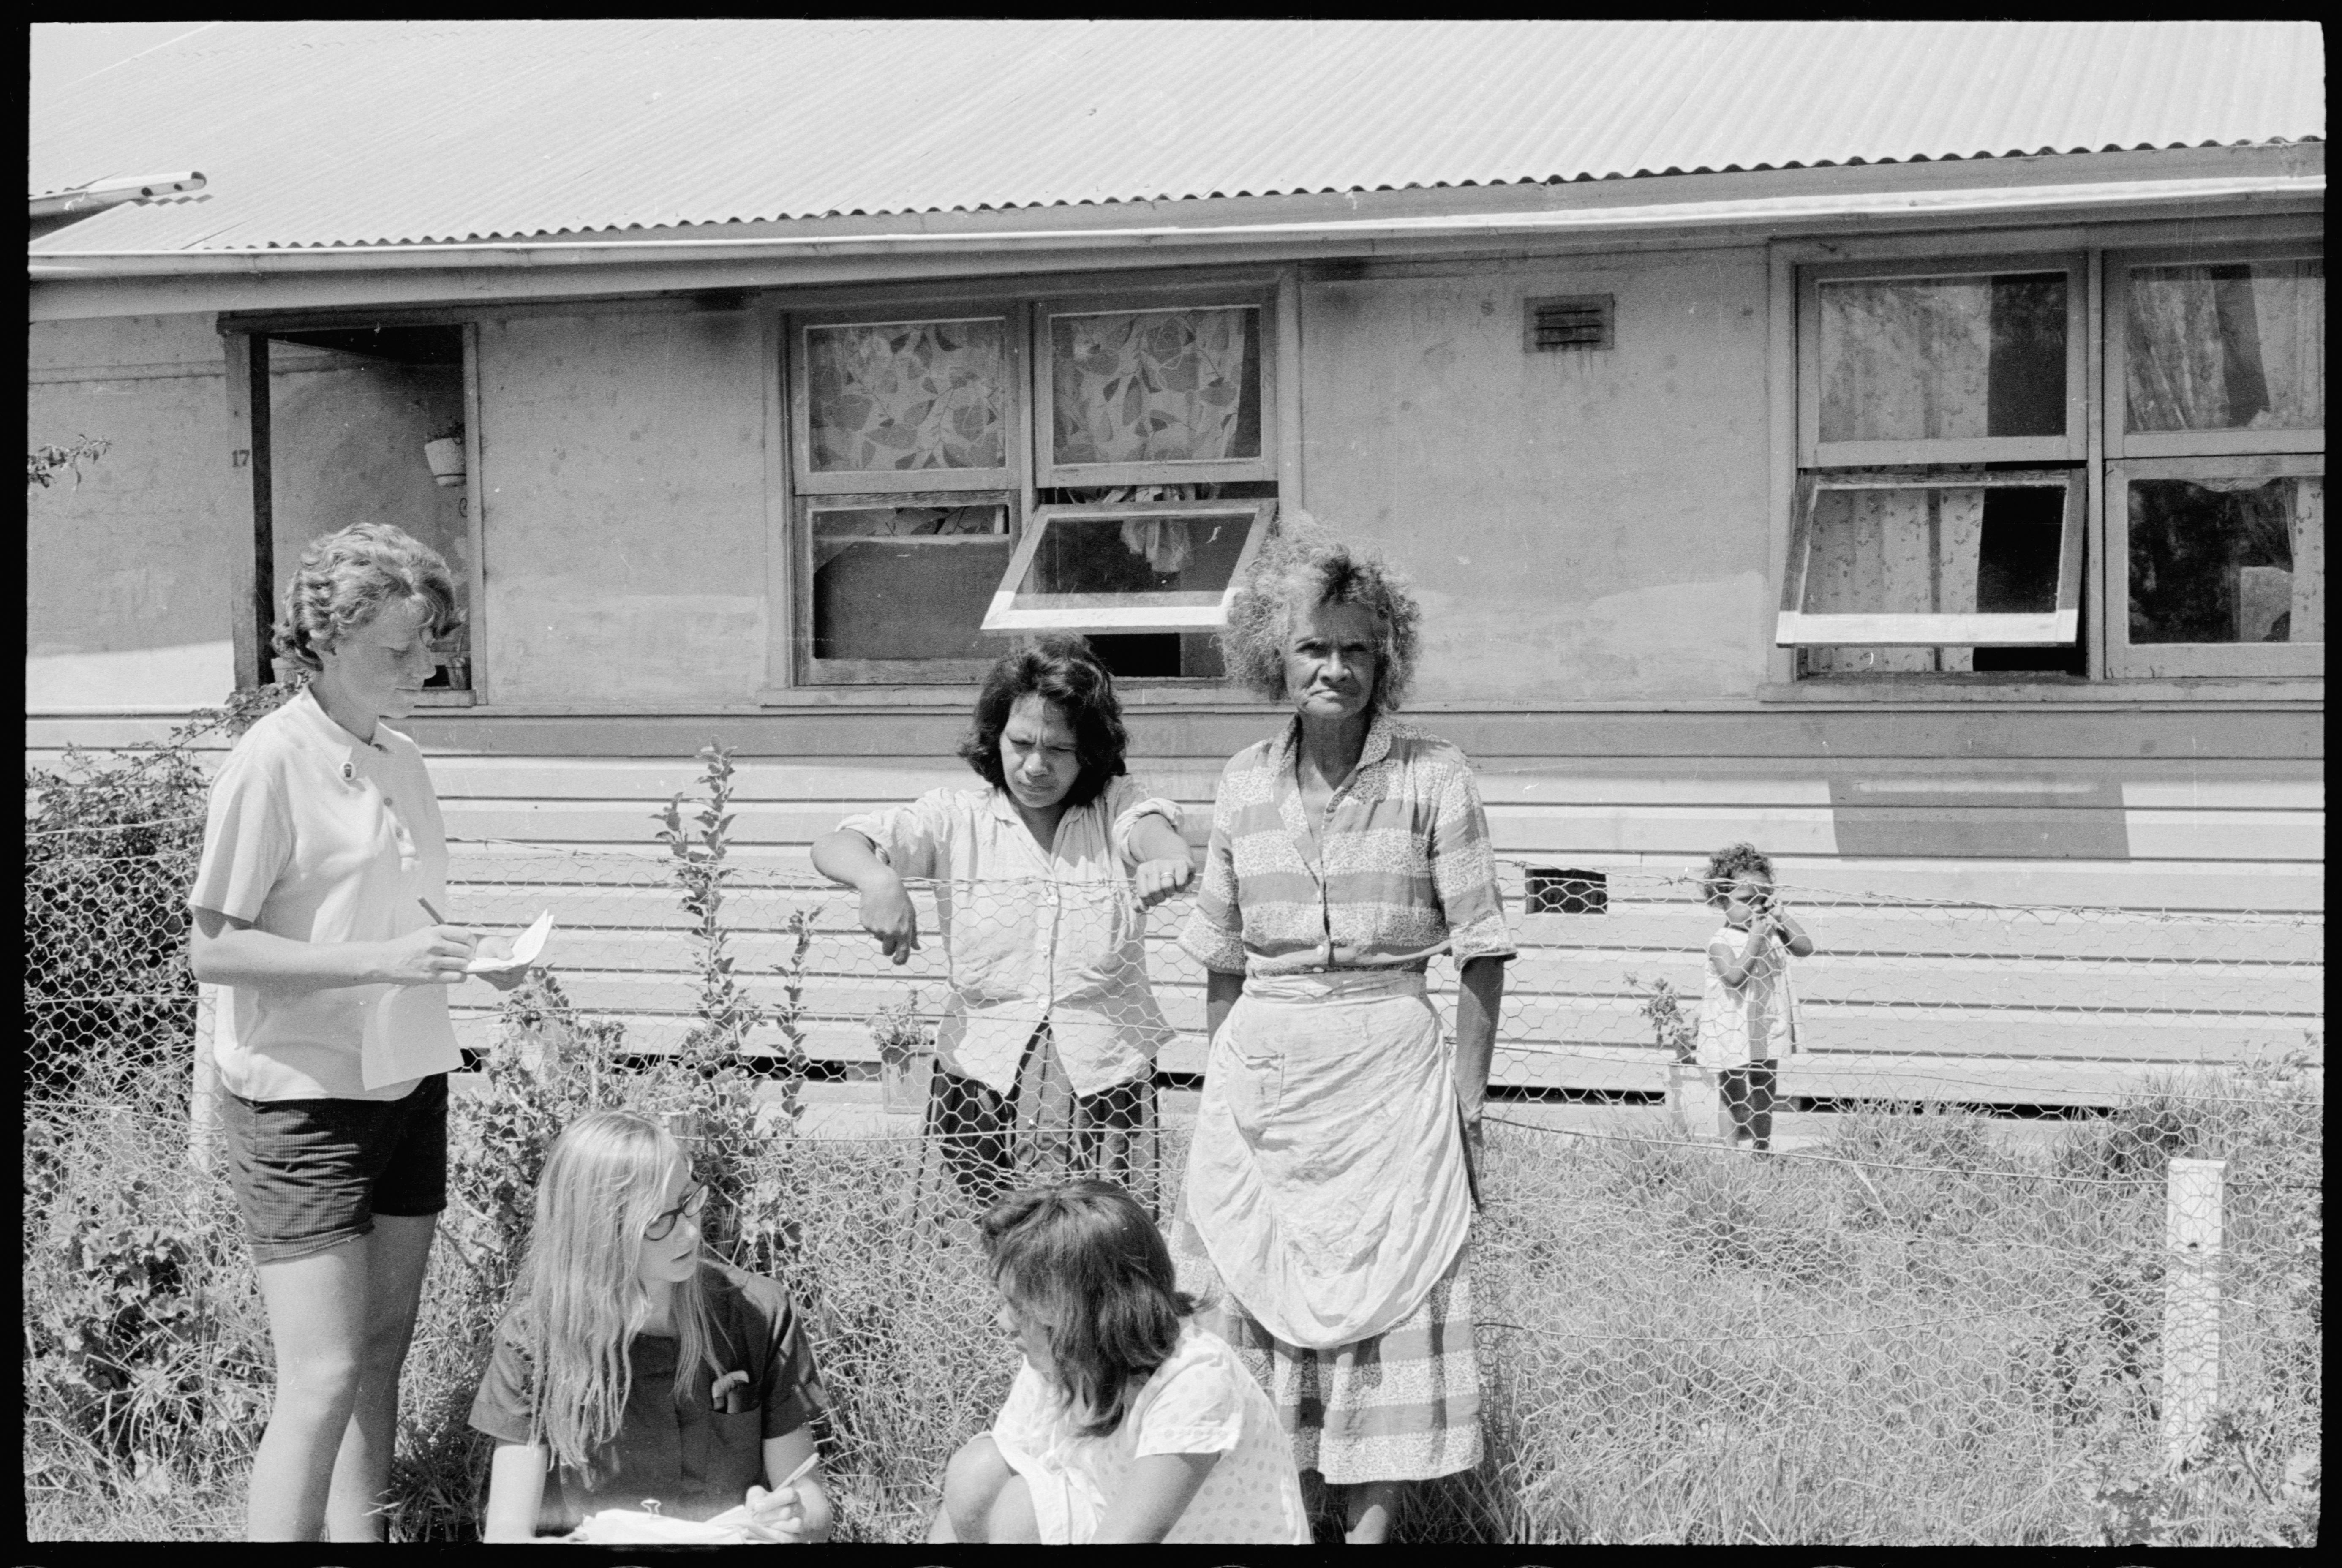 Ann Curthoys and Louise Higham interview residents at Moree Aborigial Station, 17 Feb 1965 / The Tribune